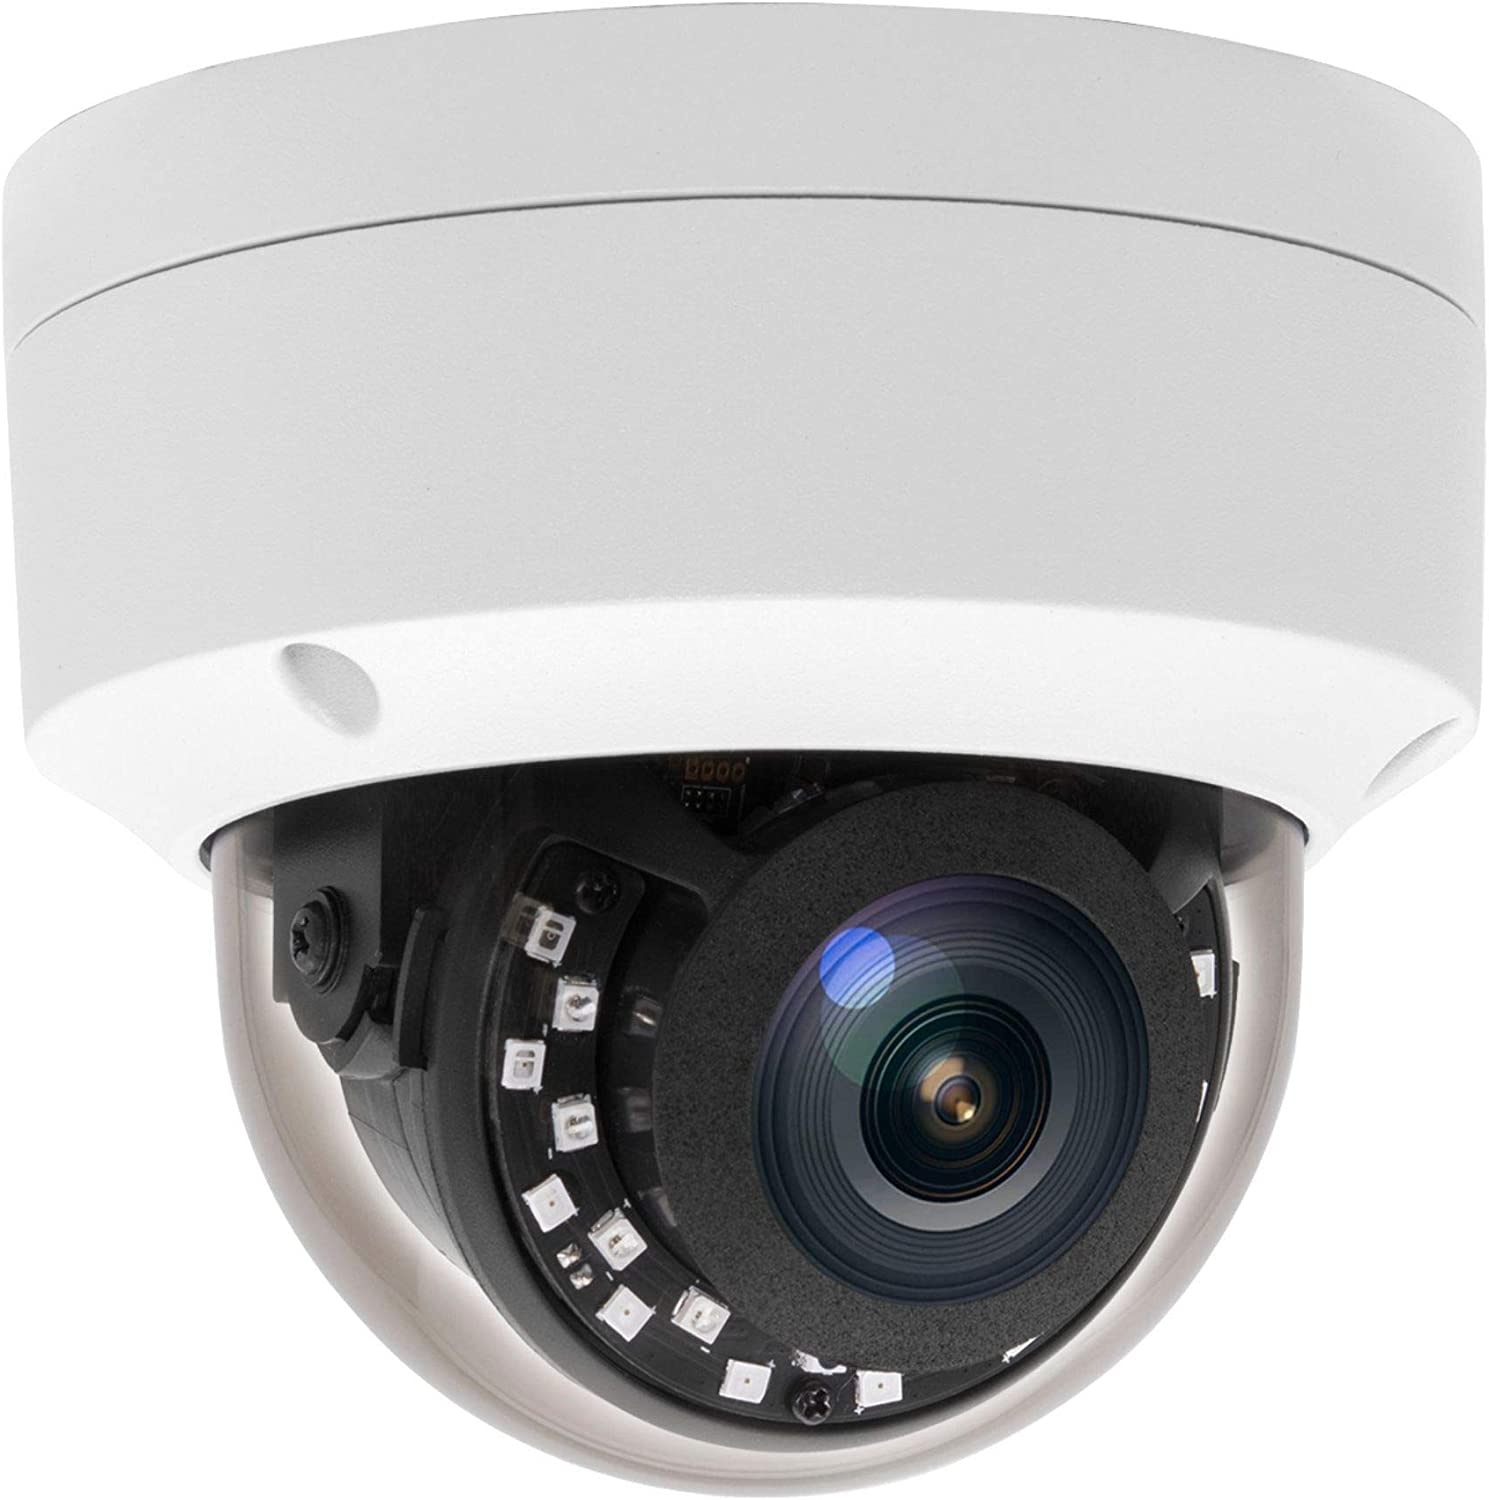 Inwerang Super HD 5MP PoE IP Vandal Dome Security Camera with Mic. Audio in, 68ft NightVision, Indoor/Outdoor IP66 Waterproof , Wide Angle 2.8mm, Motion Alert(Compatible with Hikvision&Dahua NVR )